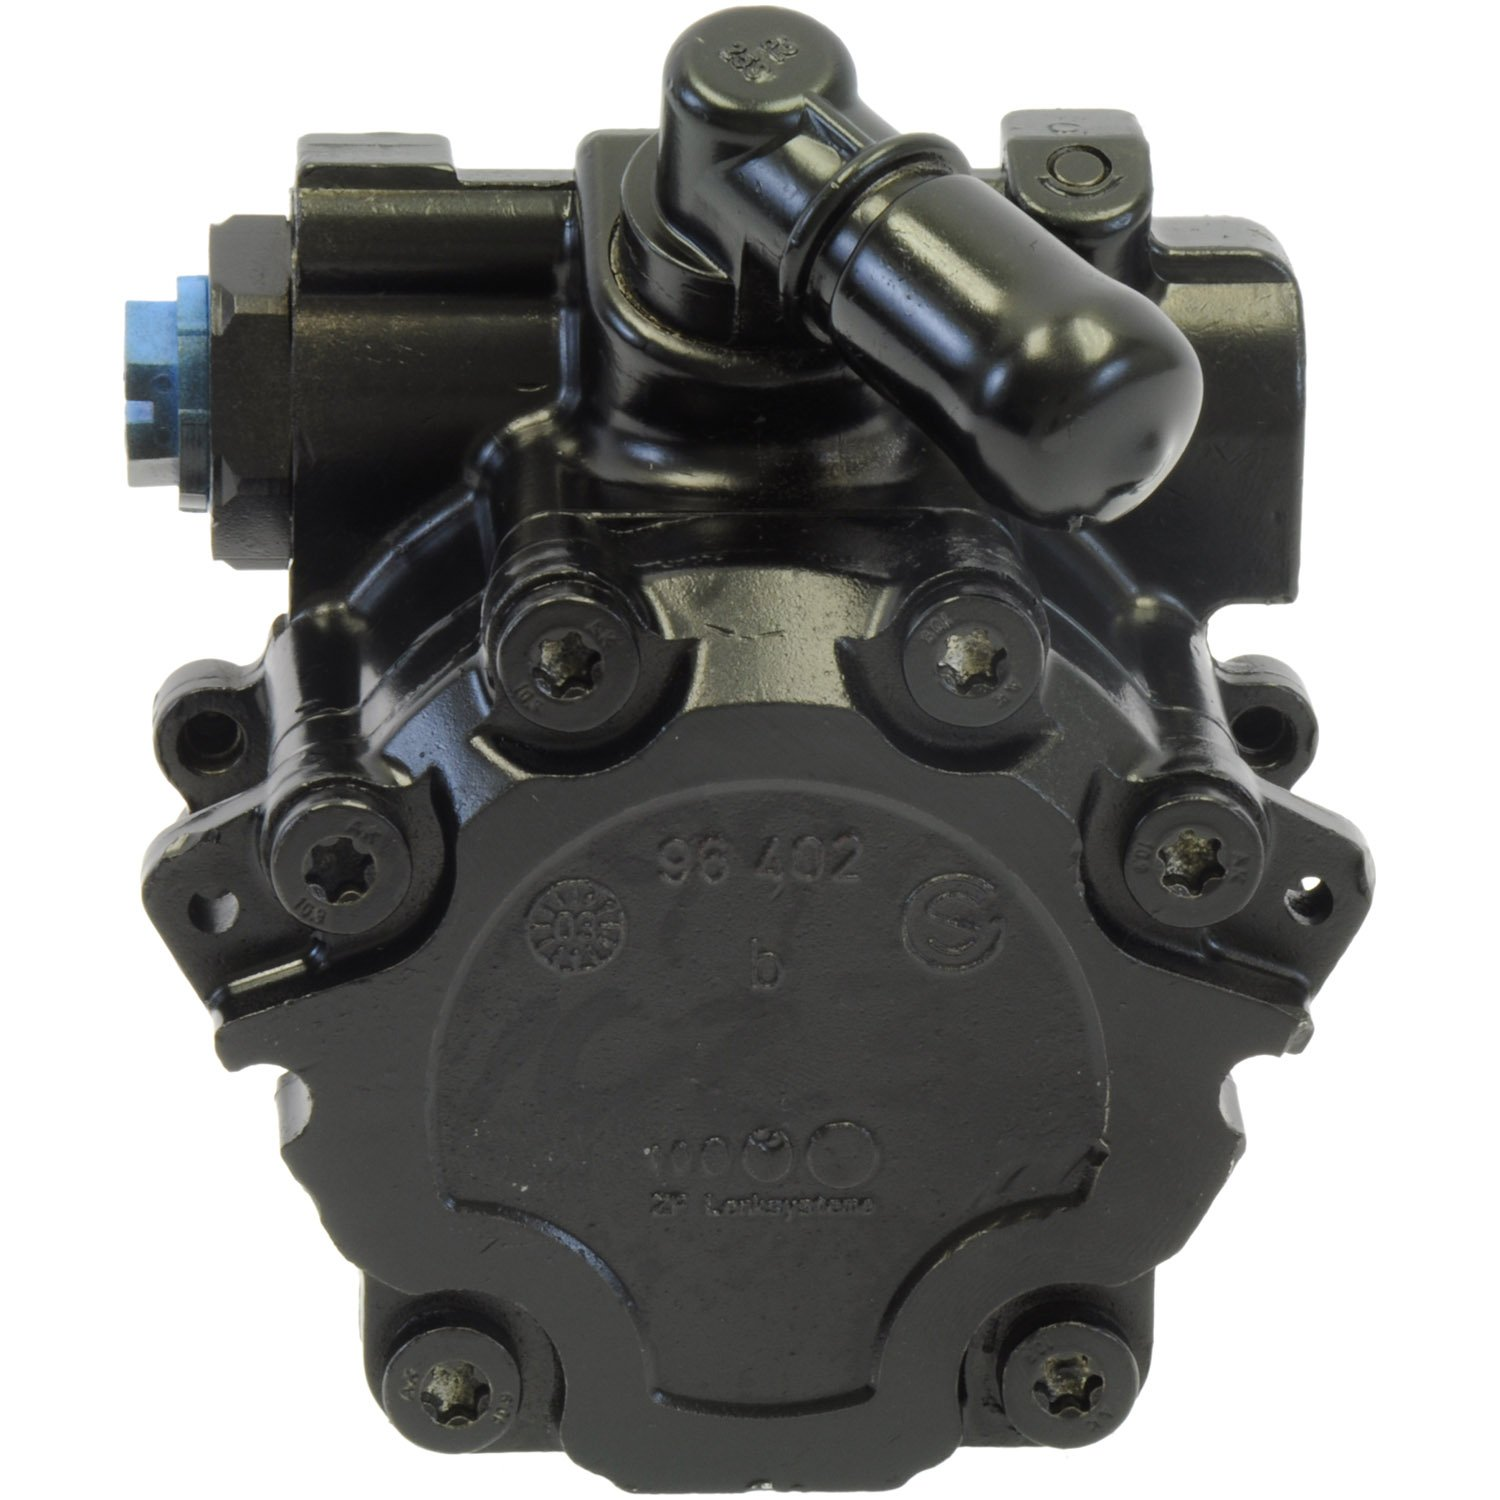 ACDelco 36P1077 Professional Power Steering Pump Remanufactured